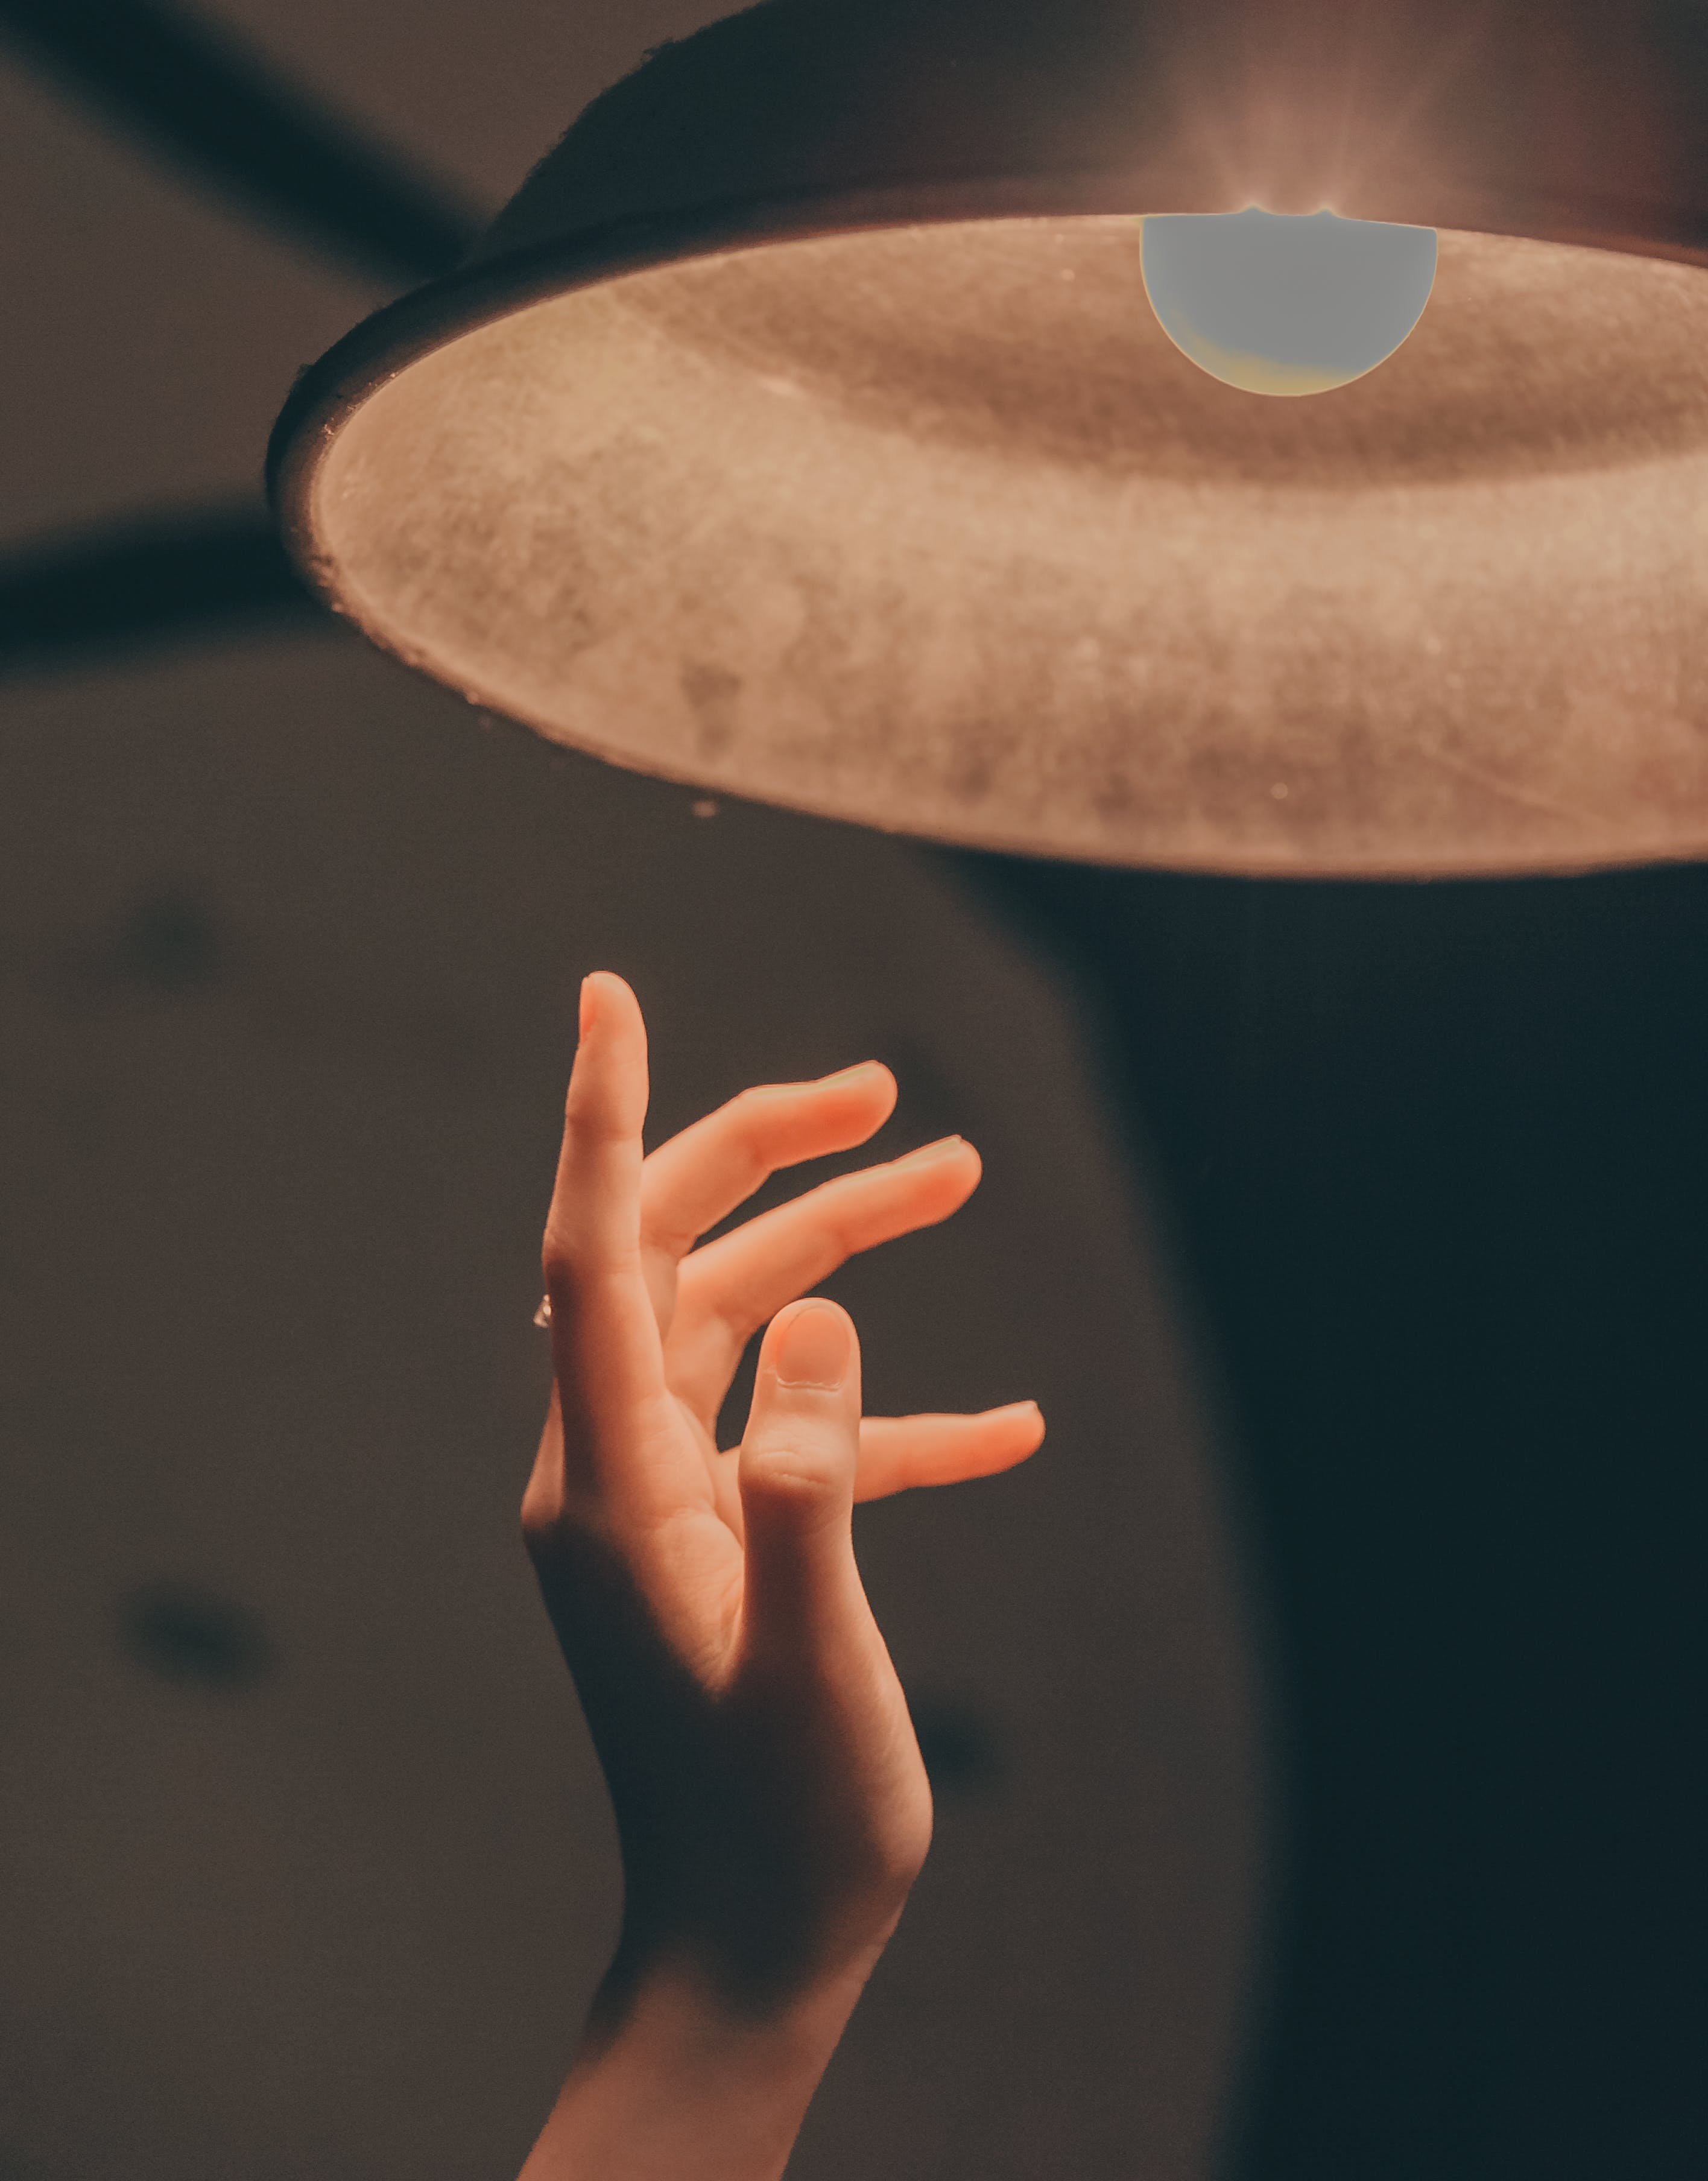 Person About to Touch the Pendant Lamp